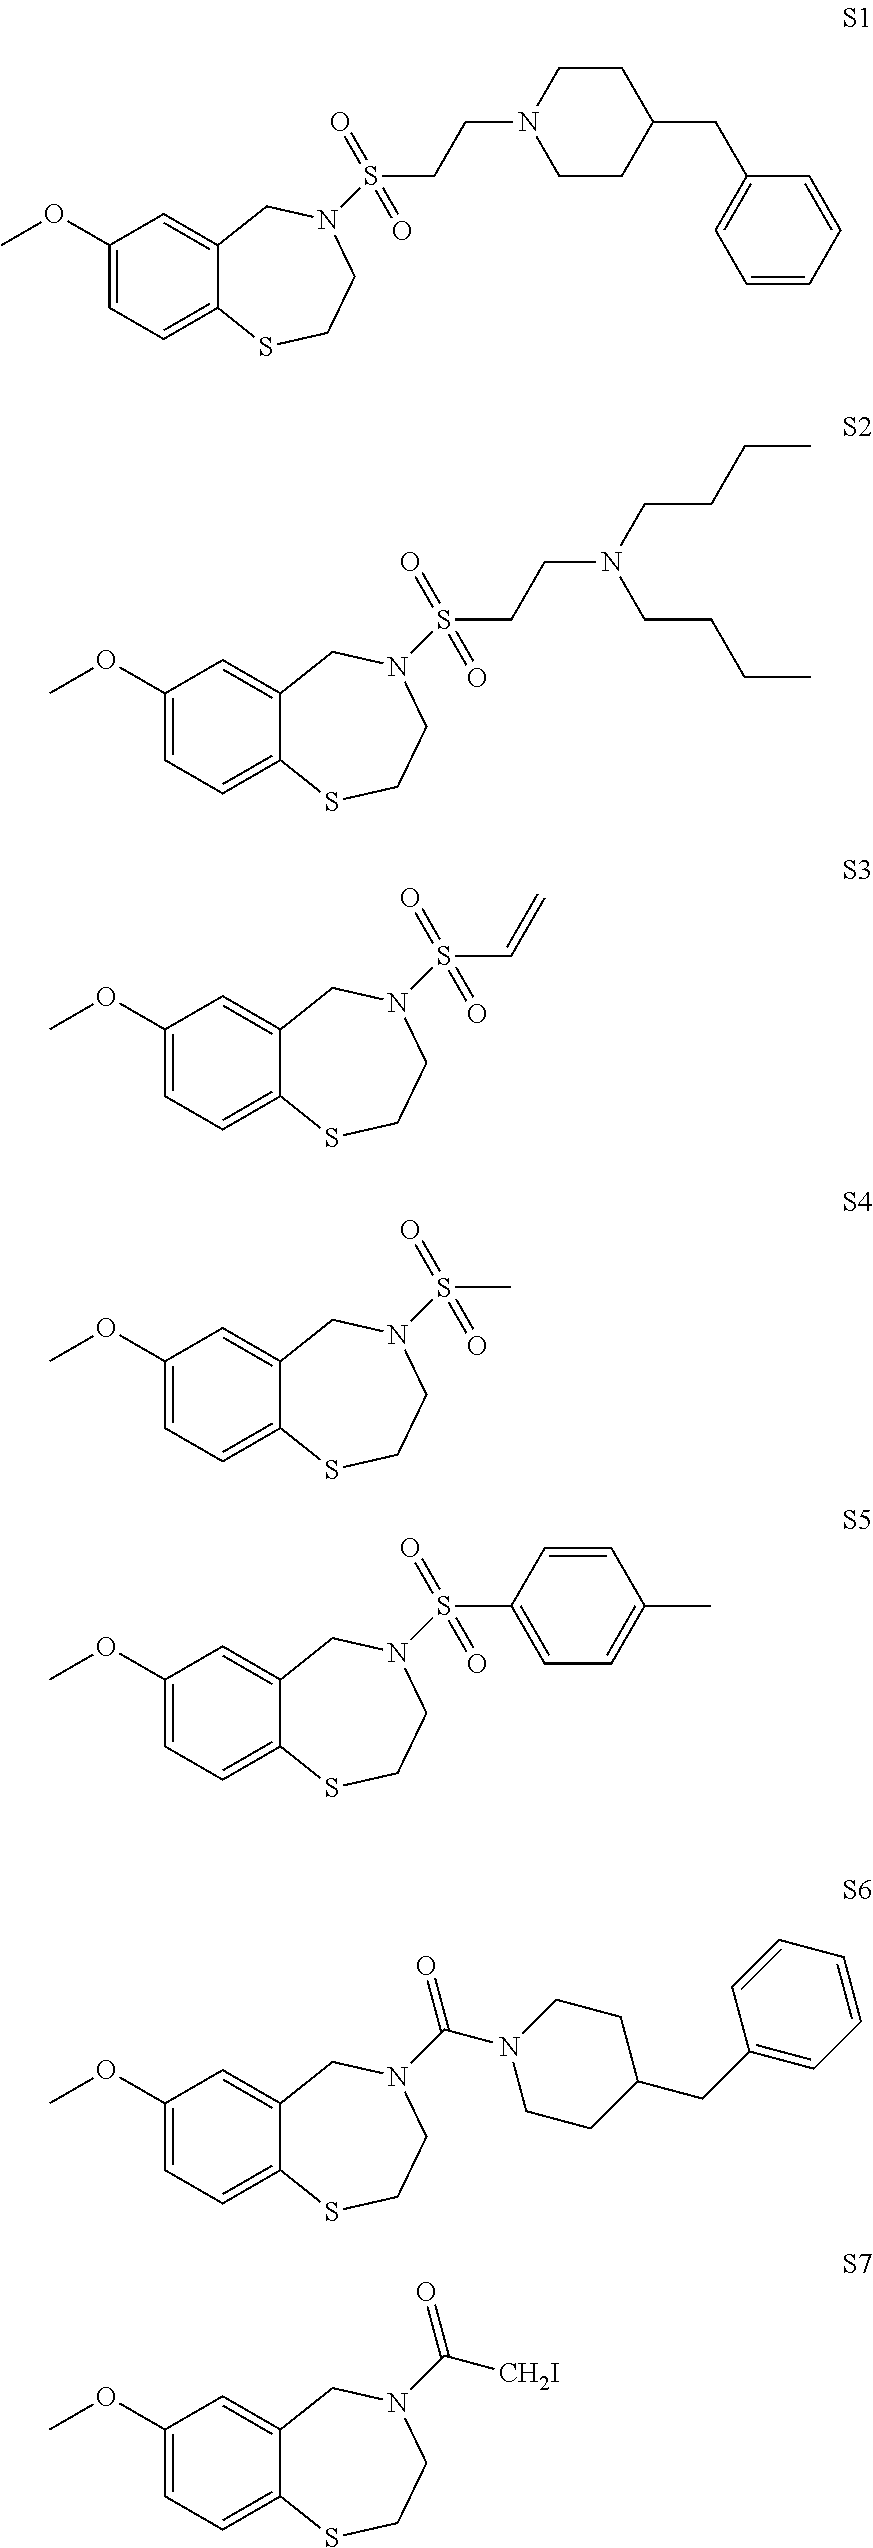 Us20140187536a1 agents for preventing and treating disorders figure us20140187536a1 20140703 c00021 pooptronica